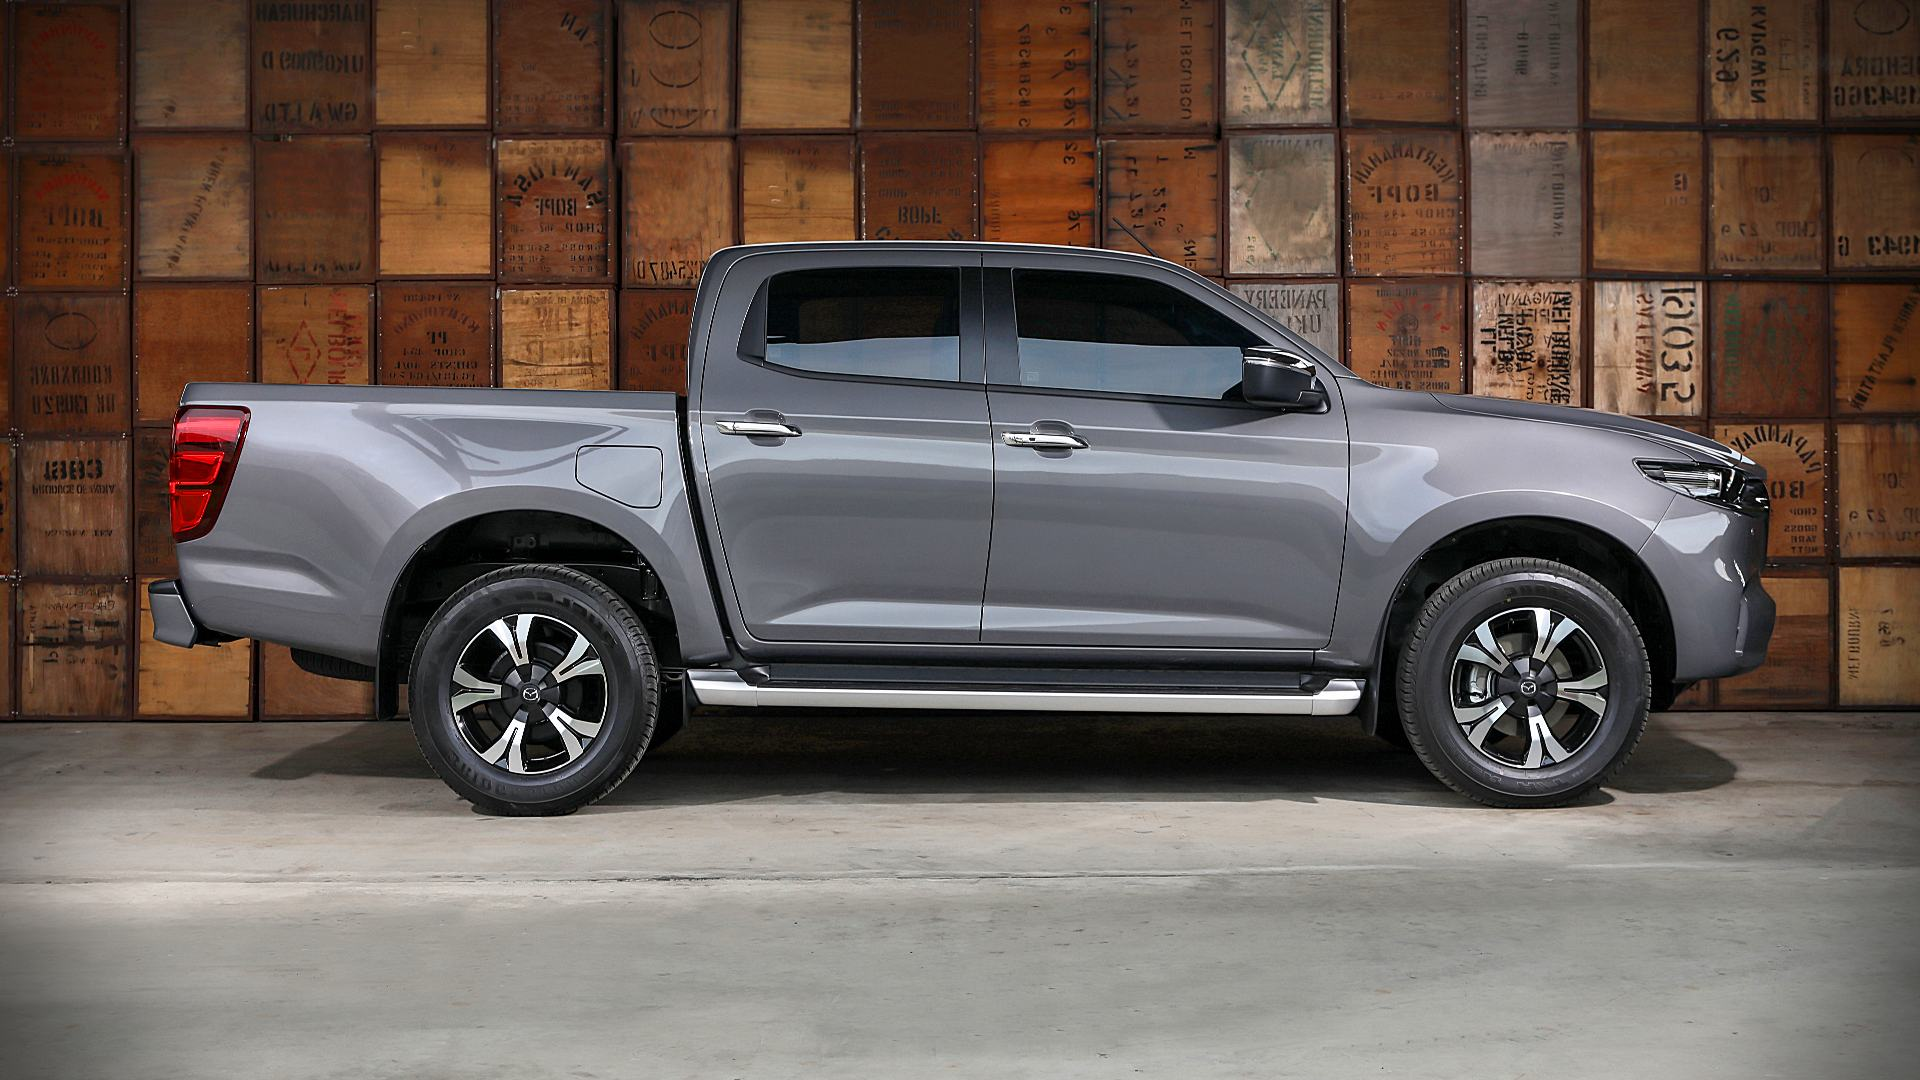 2021 Mazda BT-50 Images Pictures